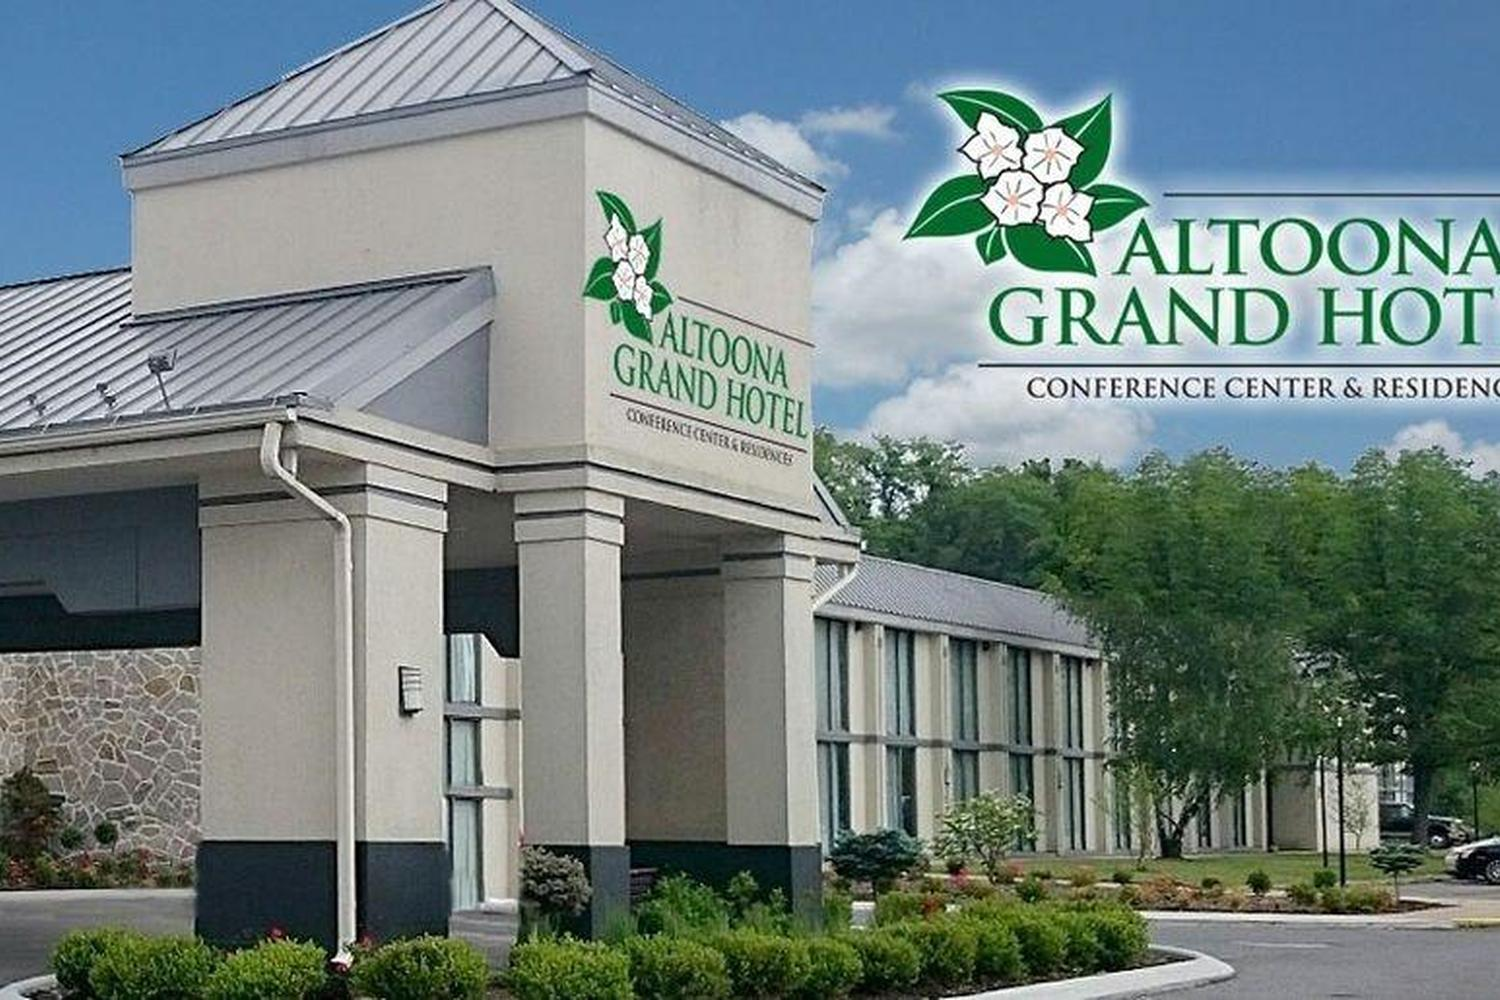 Altoona Grand Hotel Conference Center Pet Policy